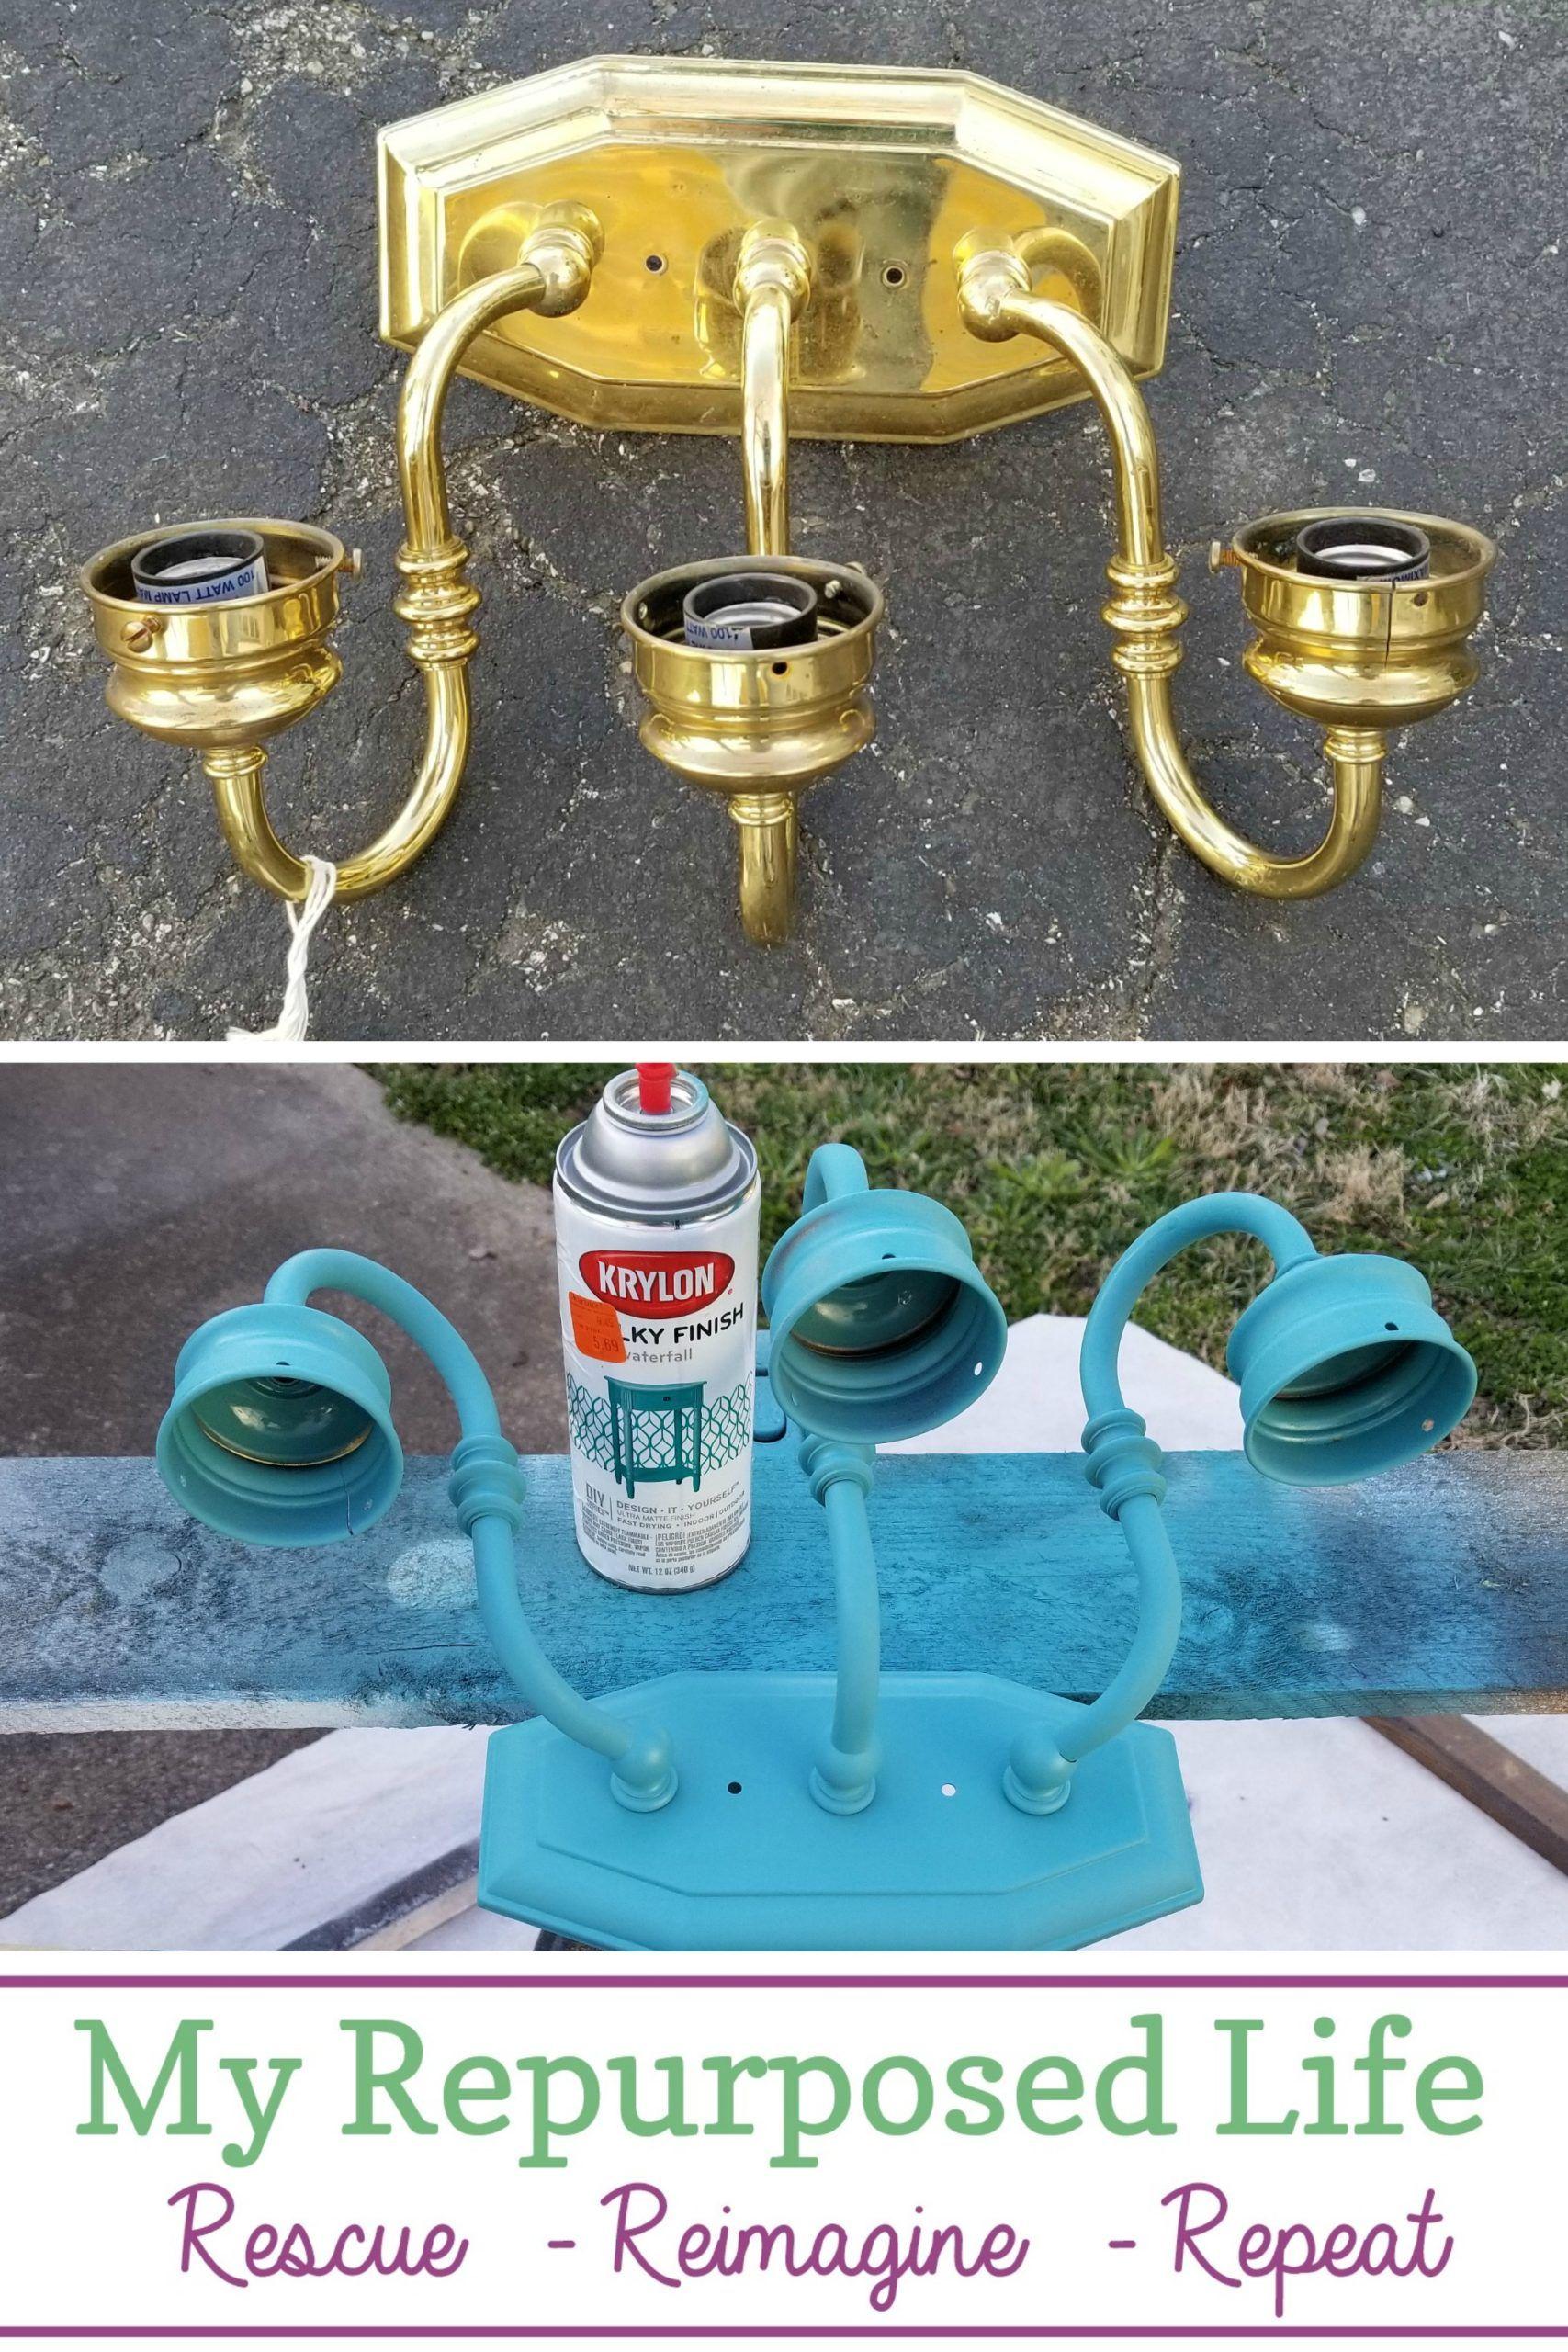 Thrifted brass vanity light gets a new look with spray paint. It even gets a new purpose as a solar light sconce for a backyard camper retreat. What a great way to add color and lighting. Choosing the right solar lights has proven to be a challenge, but I will win out in the end! #MyRepurposedLife #brass #light #repurposed #spraypaint #solar